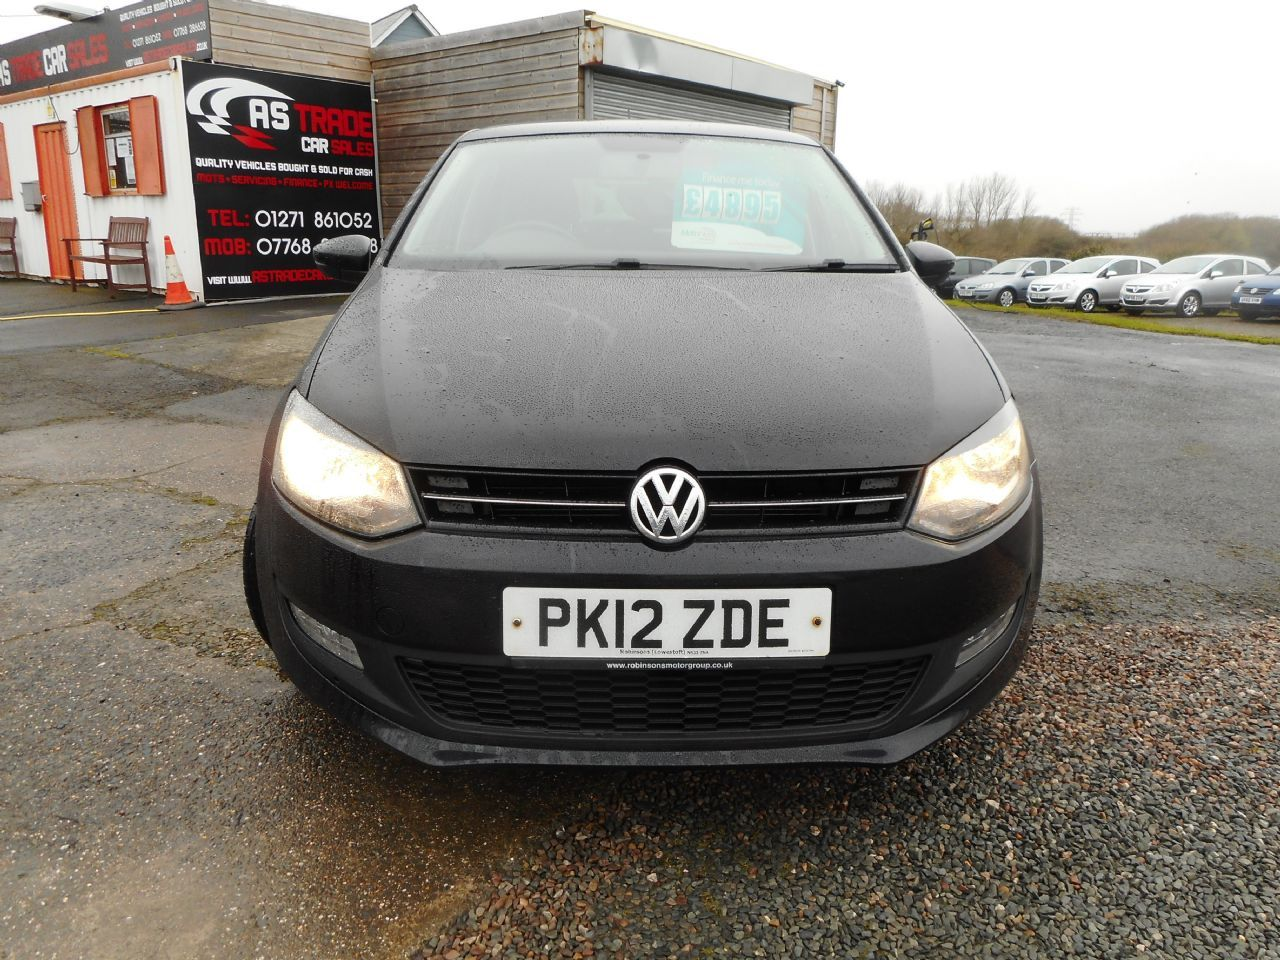 VOLKSWAGEN POLO 1.2 TDI 75 PS Match (2012) - Picture 2